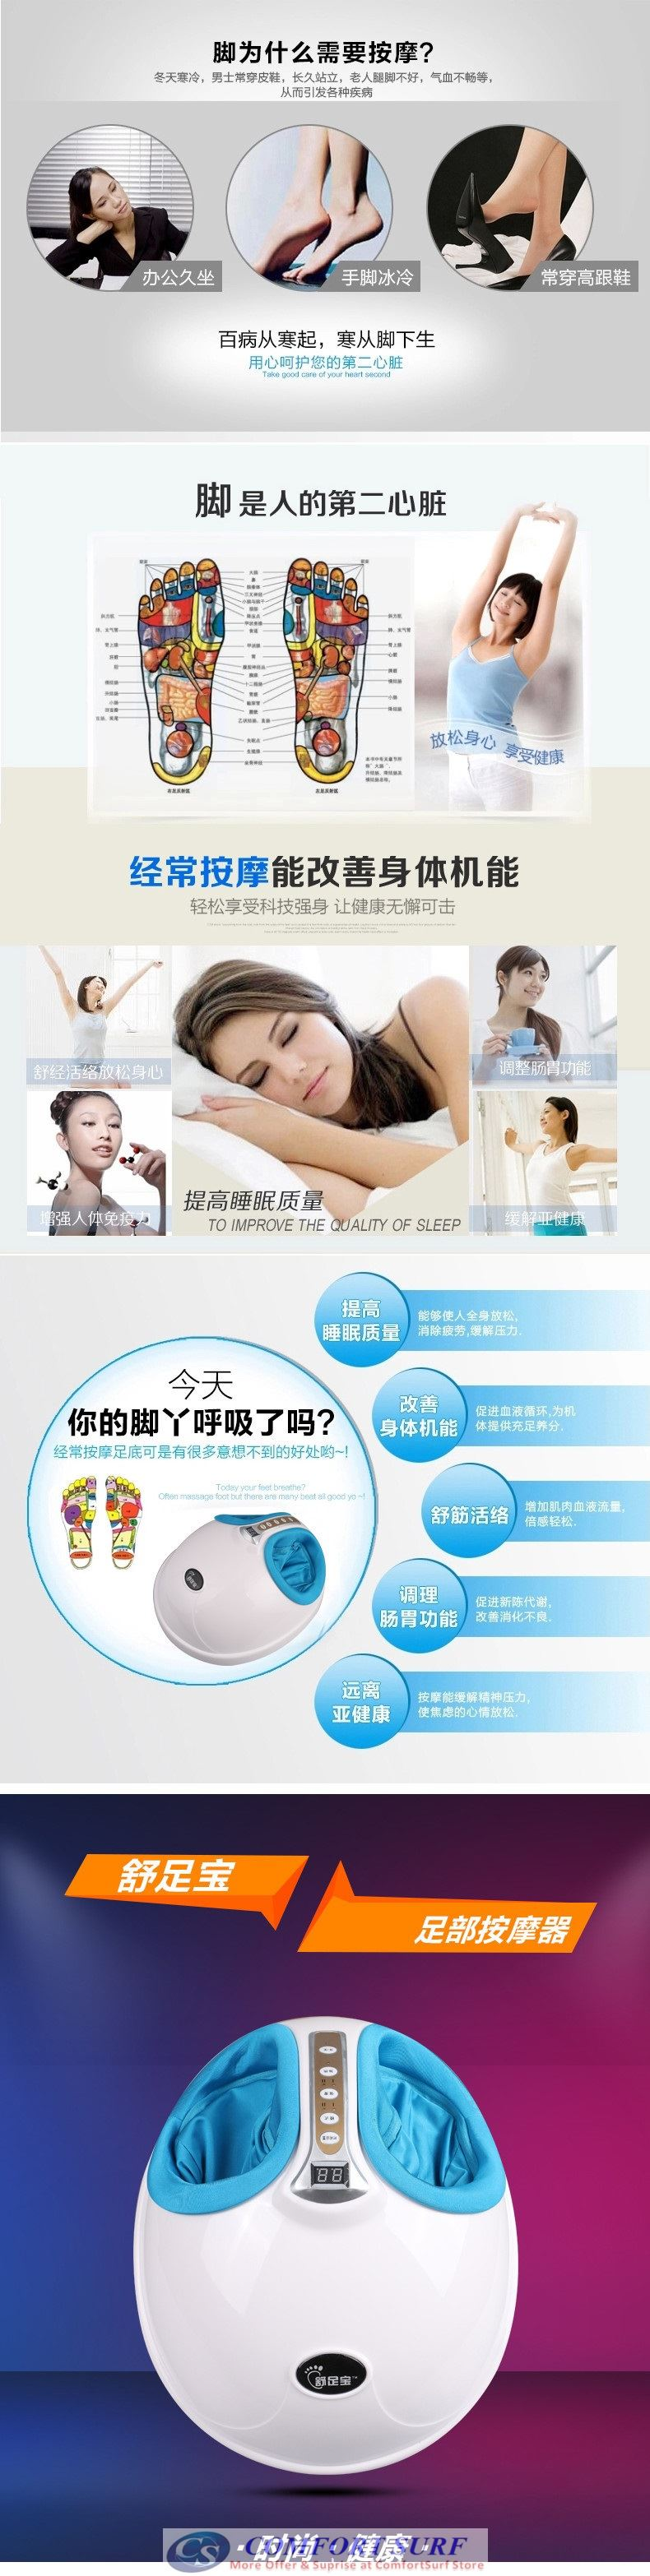 2016 Multifunctional Foot Massager Rolling Kneading Air Pressure Shiatsu Heating Heat Therapy